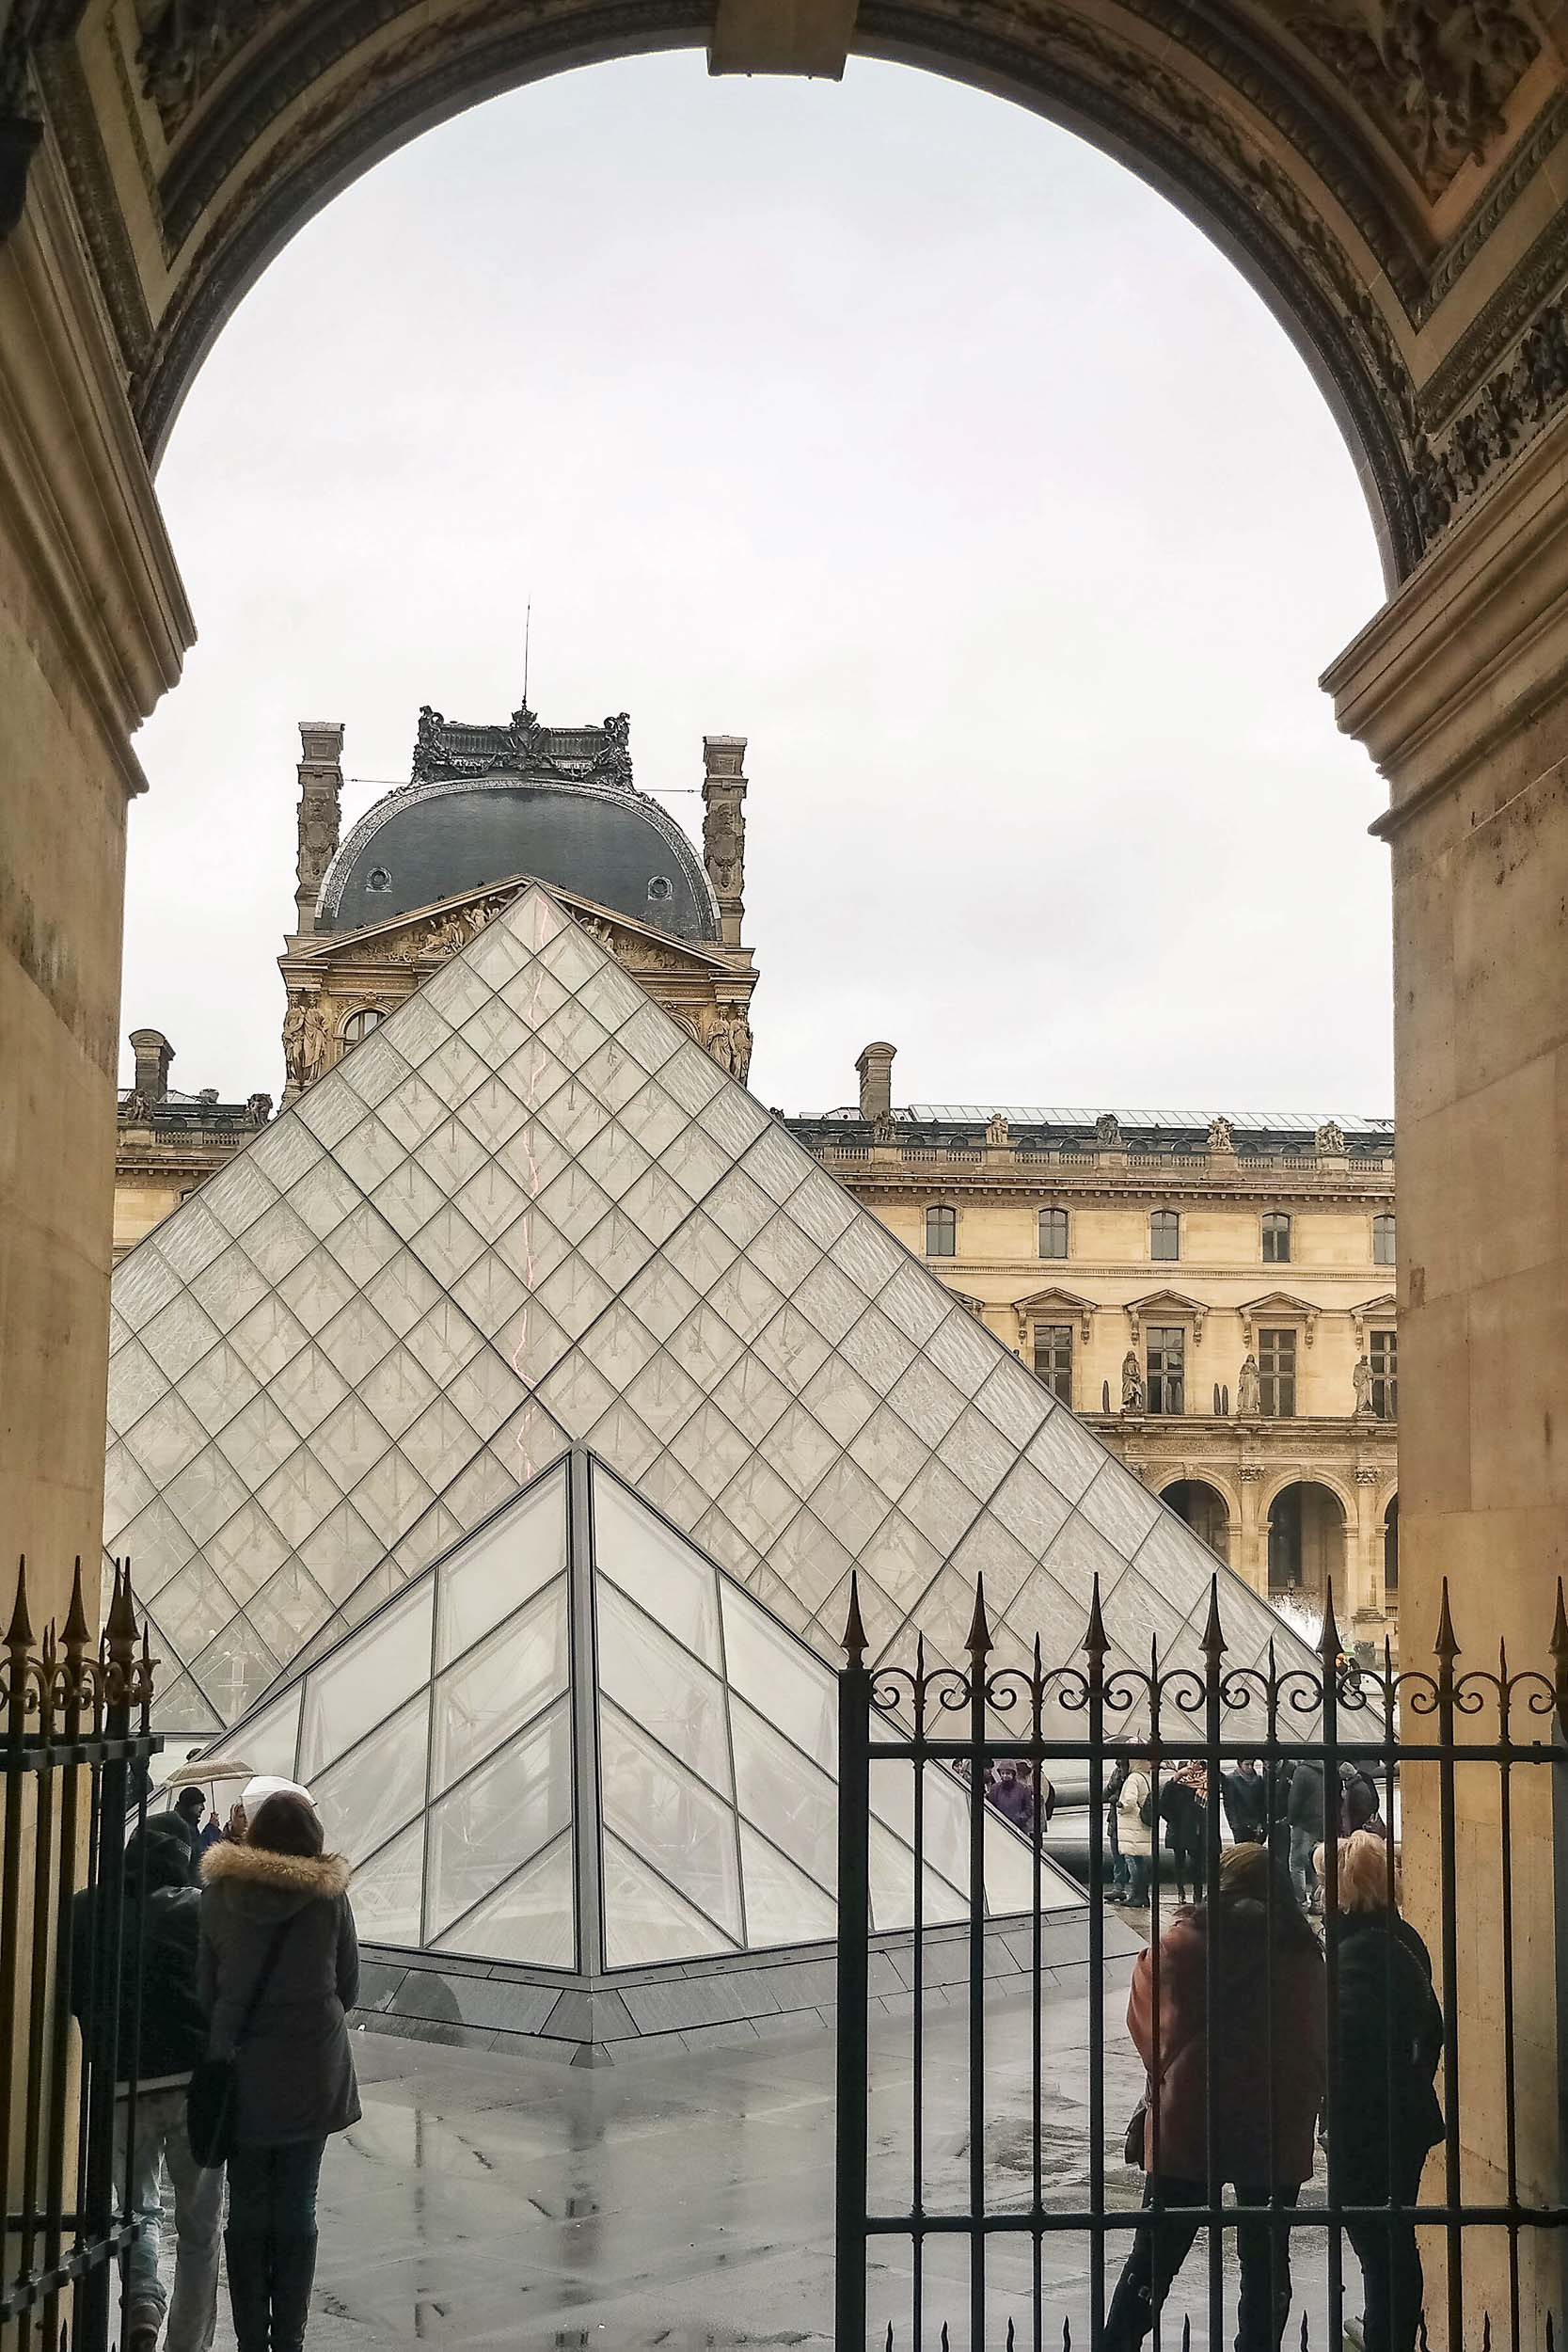 Rainy day Louvre views in Paris